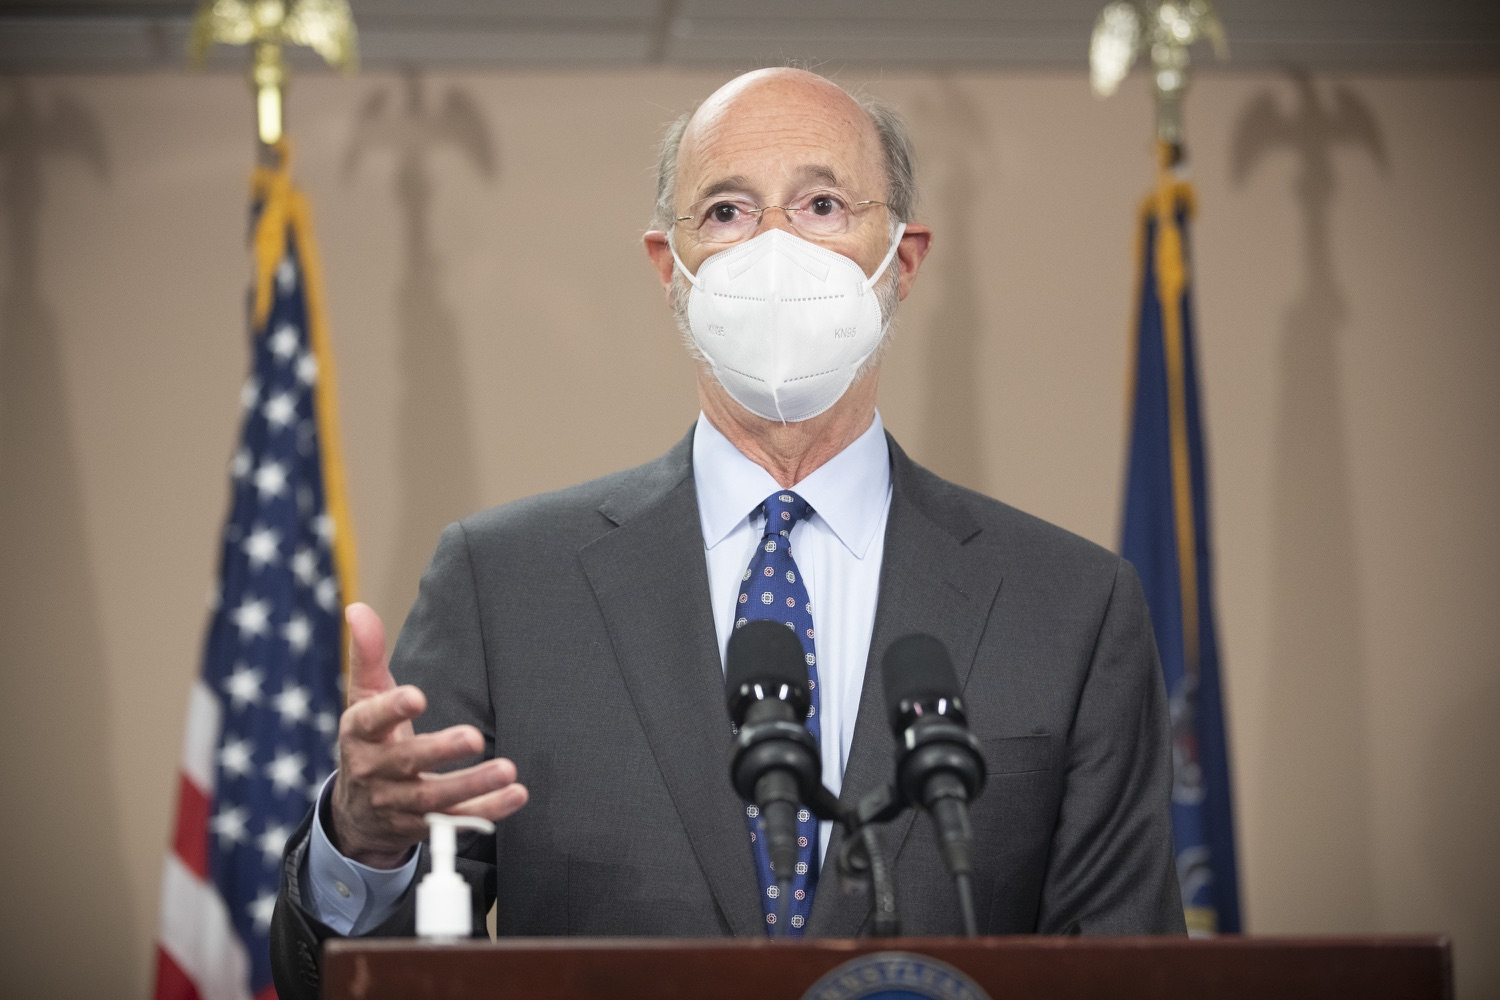 """<a href=""""https://filesource.wostreaming.net/commonwealthofpa/photo/18646_gov_vaccines_dz_001.jpg"""" target=""""_blank"""">⇣Download Photo<br></a>Pennsylvania Governor Tom Wolf speaking with the press.  After vaccinating more than 112,500 teachers and school staff in only about three weeks, Governor Tom Wolf visited Luzerne County today to announce the special vaccination initiative is a success and was completed ahead of schedule. The accomplishment is an important step to help more students and teachers safely return to classrooms across the state.  Kingston, PA - April 2, 2021"""